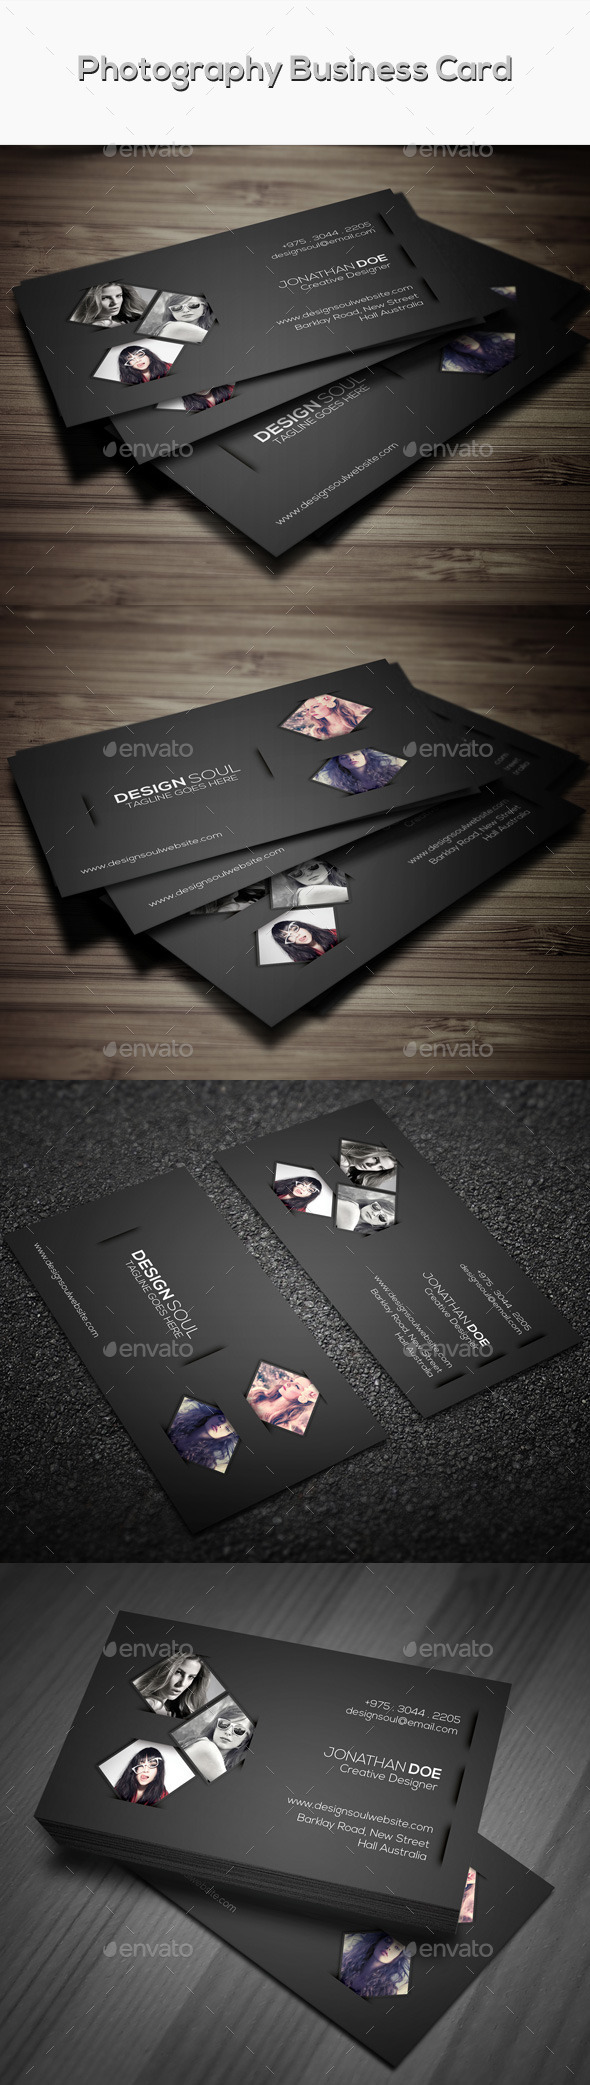 GraphicRiver Photography Business Card 9626881